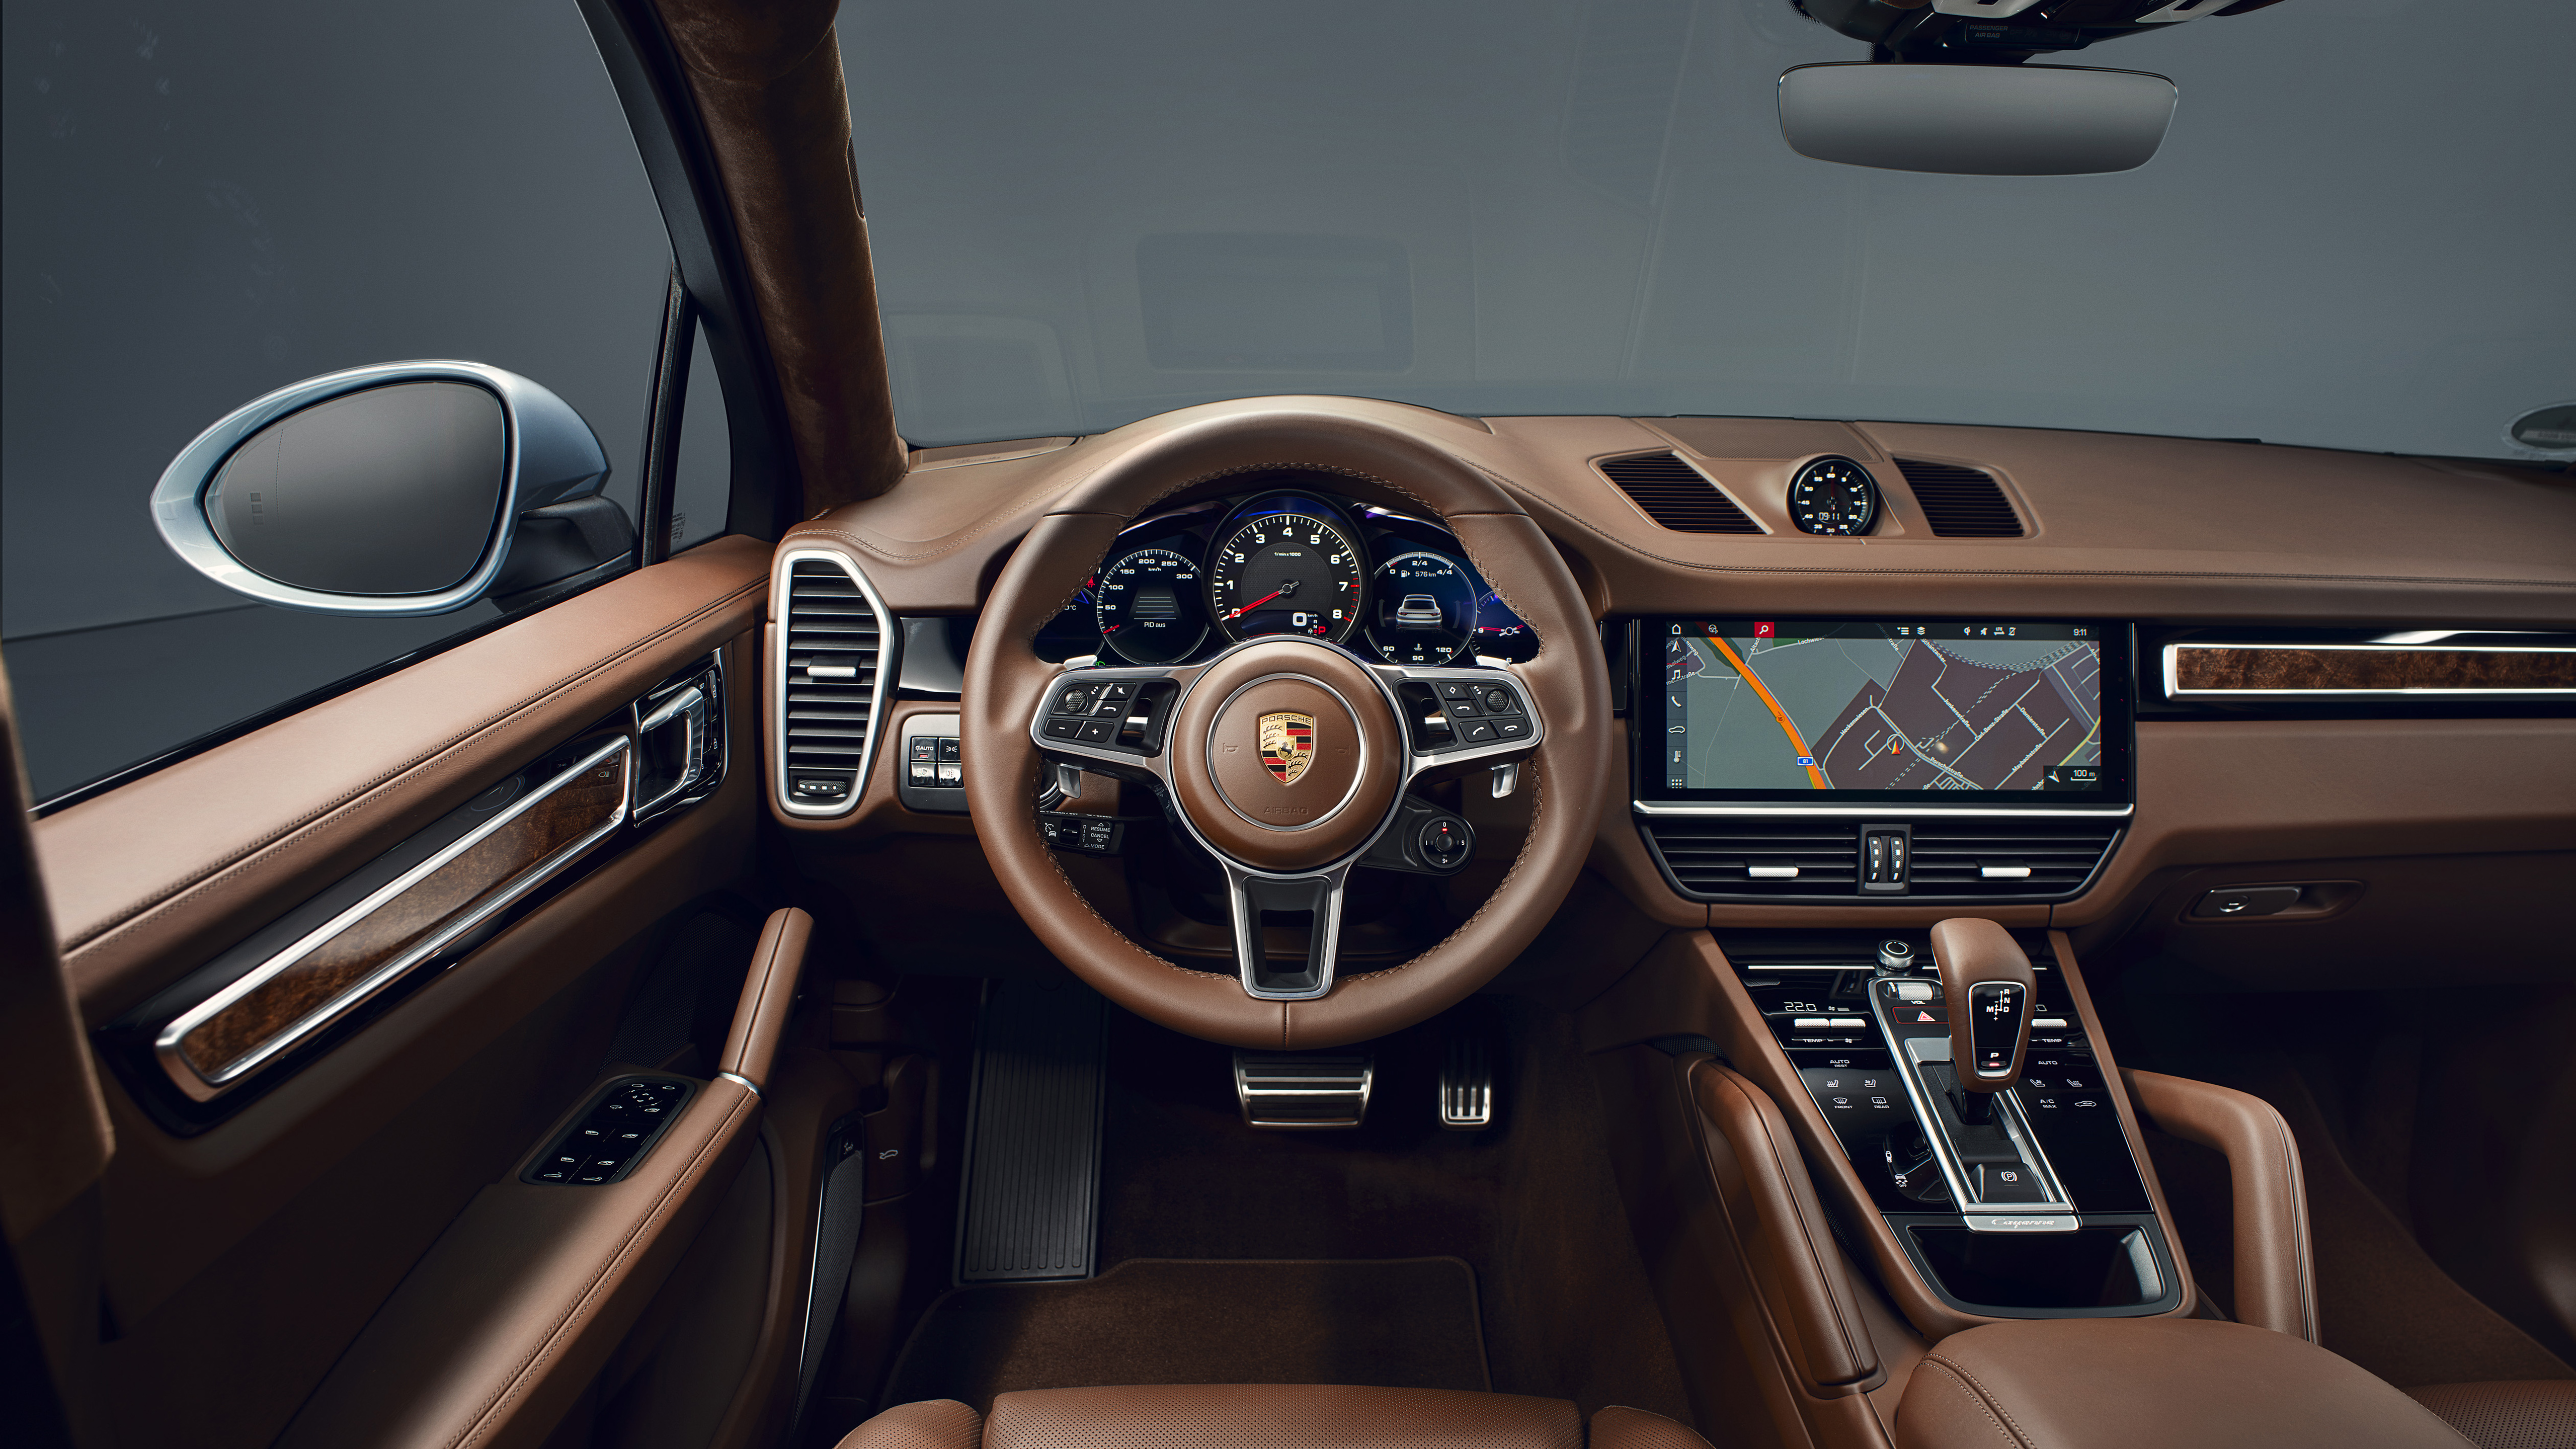 Porsche Cayenne S Coupe 2019 Interior 5k Wallpaper Hd Car Wallpapers Id 12564